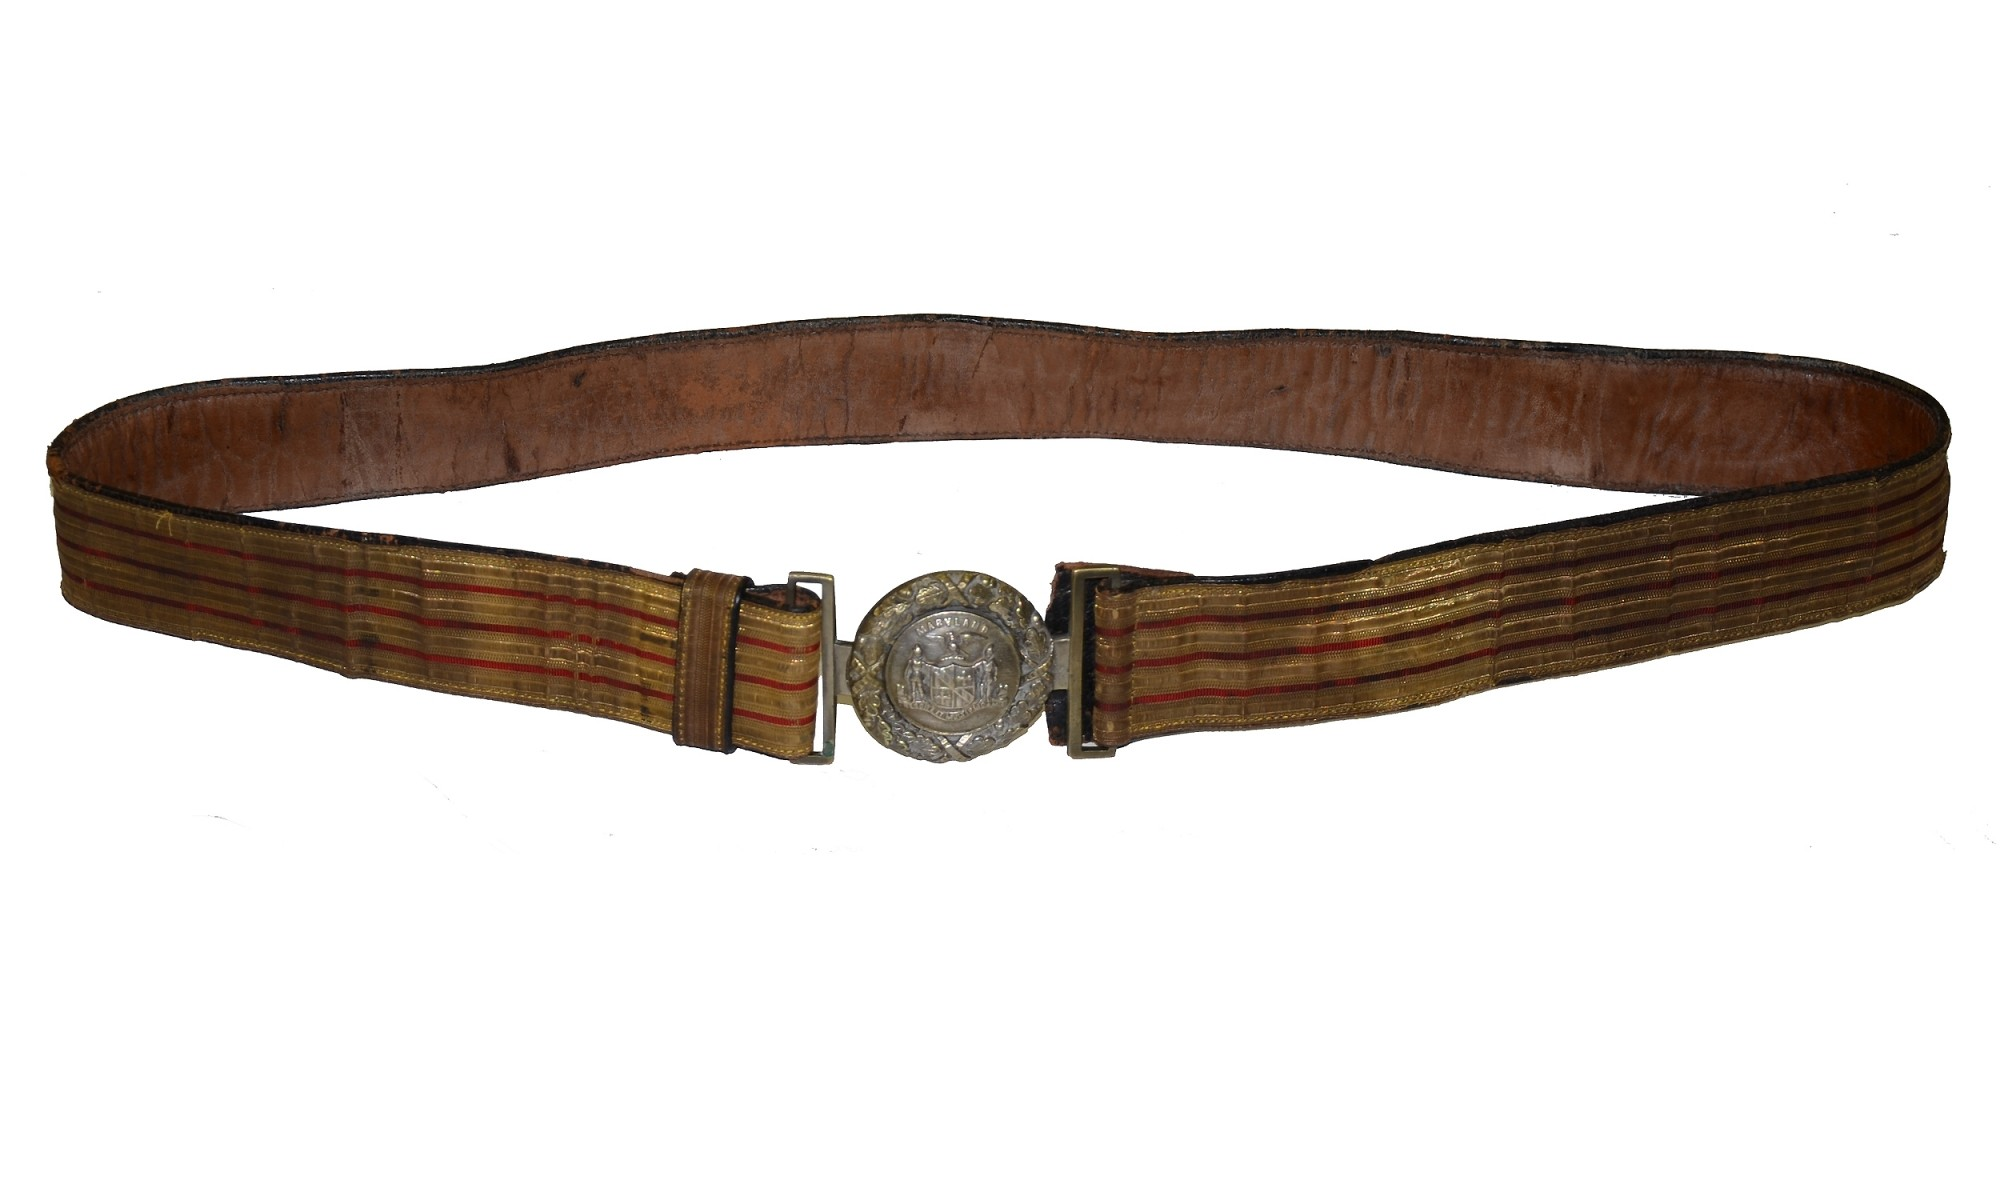 POST-CIVIL WAR MARYLAND BELT WITH TWO PIECE BUCKLE